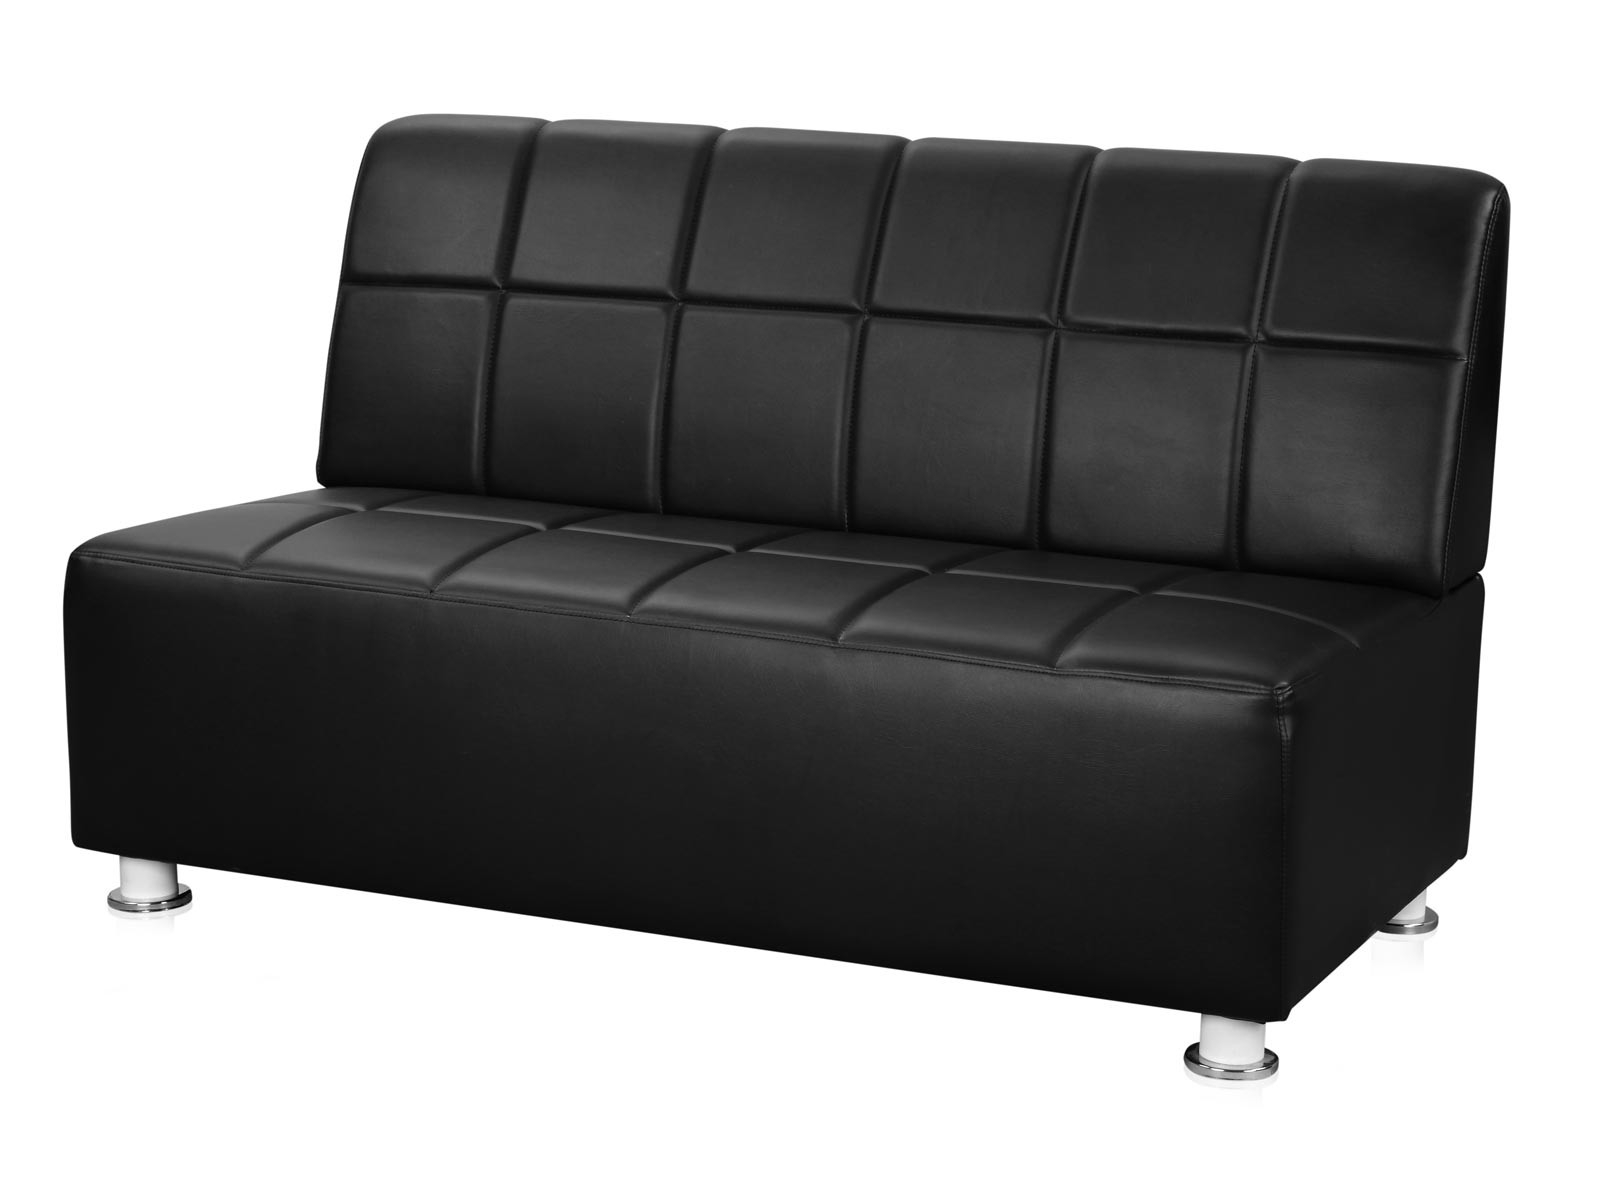 Sofa Salon S5d8 Argento Waiting sofa Salon Furniture Living It Up